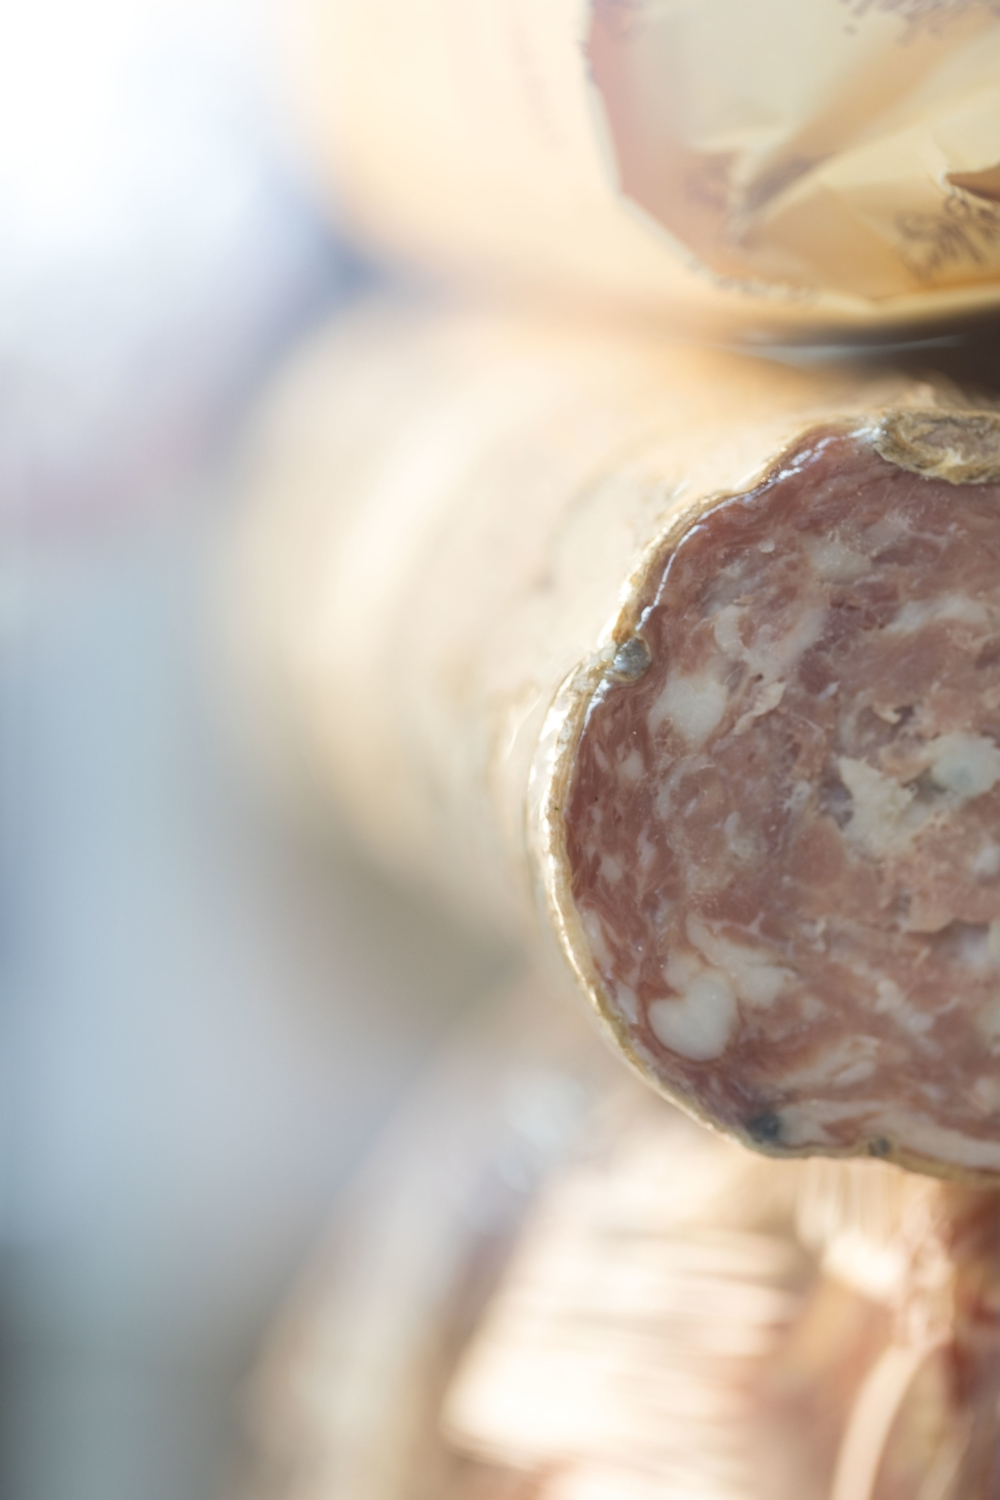 Jimena-Peck-Denver-Food-Photographer-The-Emporium-Kitchen-And-Wine-Market-Salami